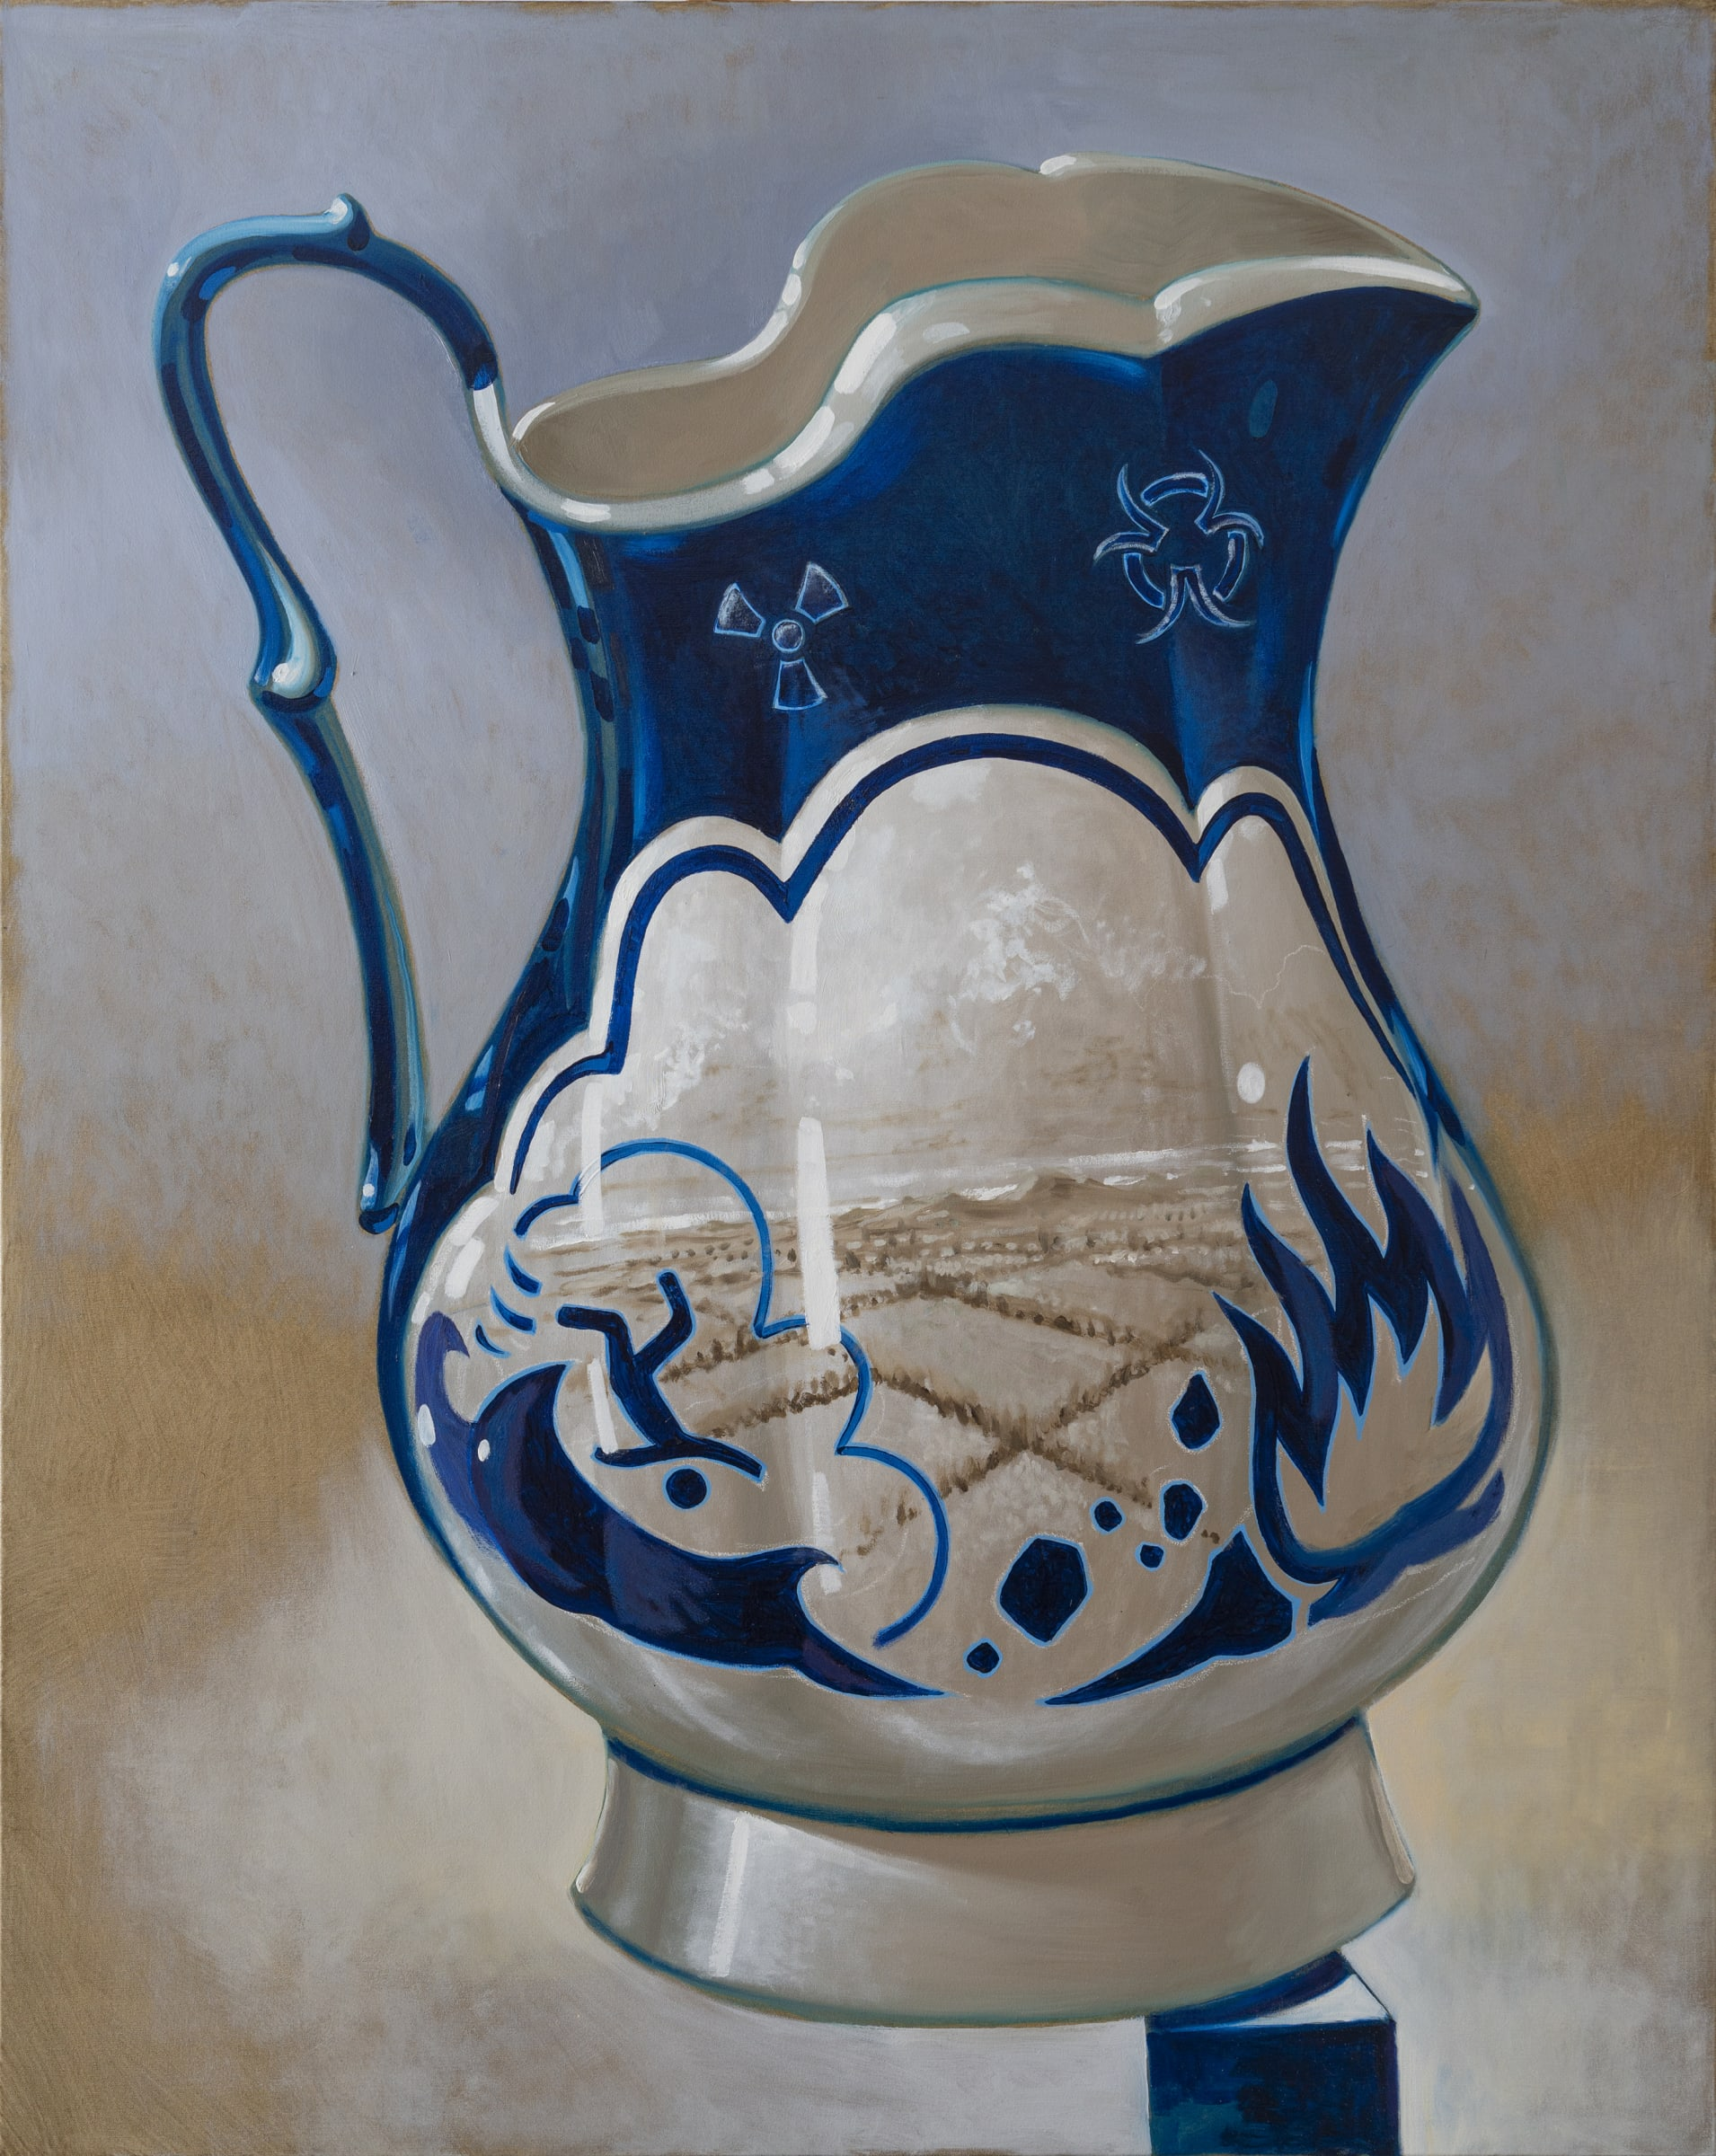 "<span class=""link fancybox-details-link""><a href=""/artists/51-derek-cowie/works/7841-derek-cowie-blue-jug-2019/"">View Detail Page</a></span><div class=""artist""><strong>Derek Cowie</strong></div> <div class=""title""><em>Blue Jug</em>, 2019</div> <div class=""medium"">Oil on canvas</div> <div class=""dimensions"">1520mm x 1210mm</div><div class=""copyright_line"">Copyright The Artist</div>"